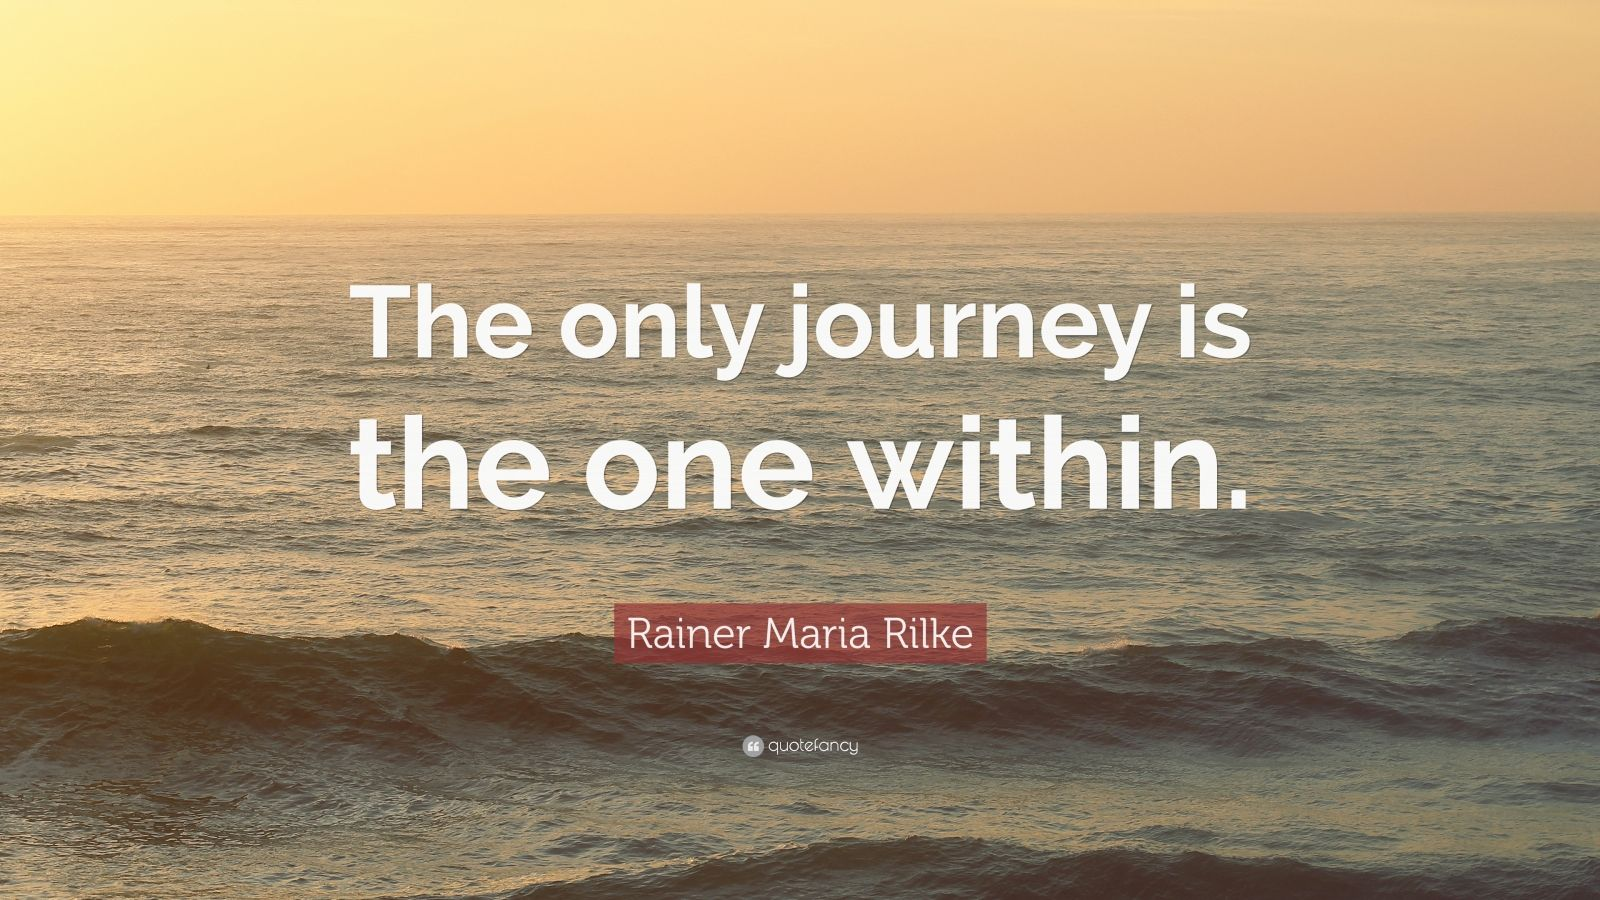 a critique of rainer marie rilkes statement that the only journey is the one within Throughout our lifetime, every individual goes through a journey, which encounters the positives and negatives within the world journeys discover the.